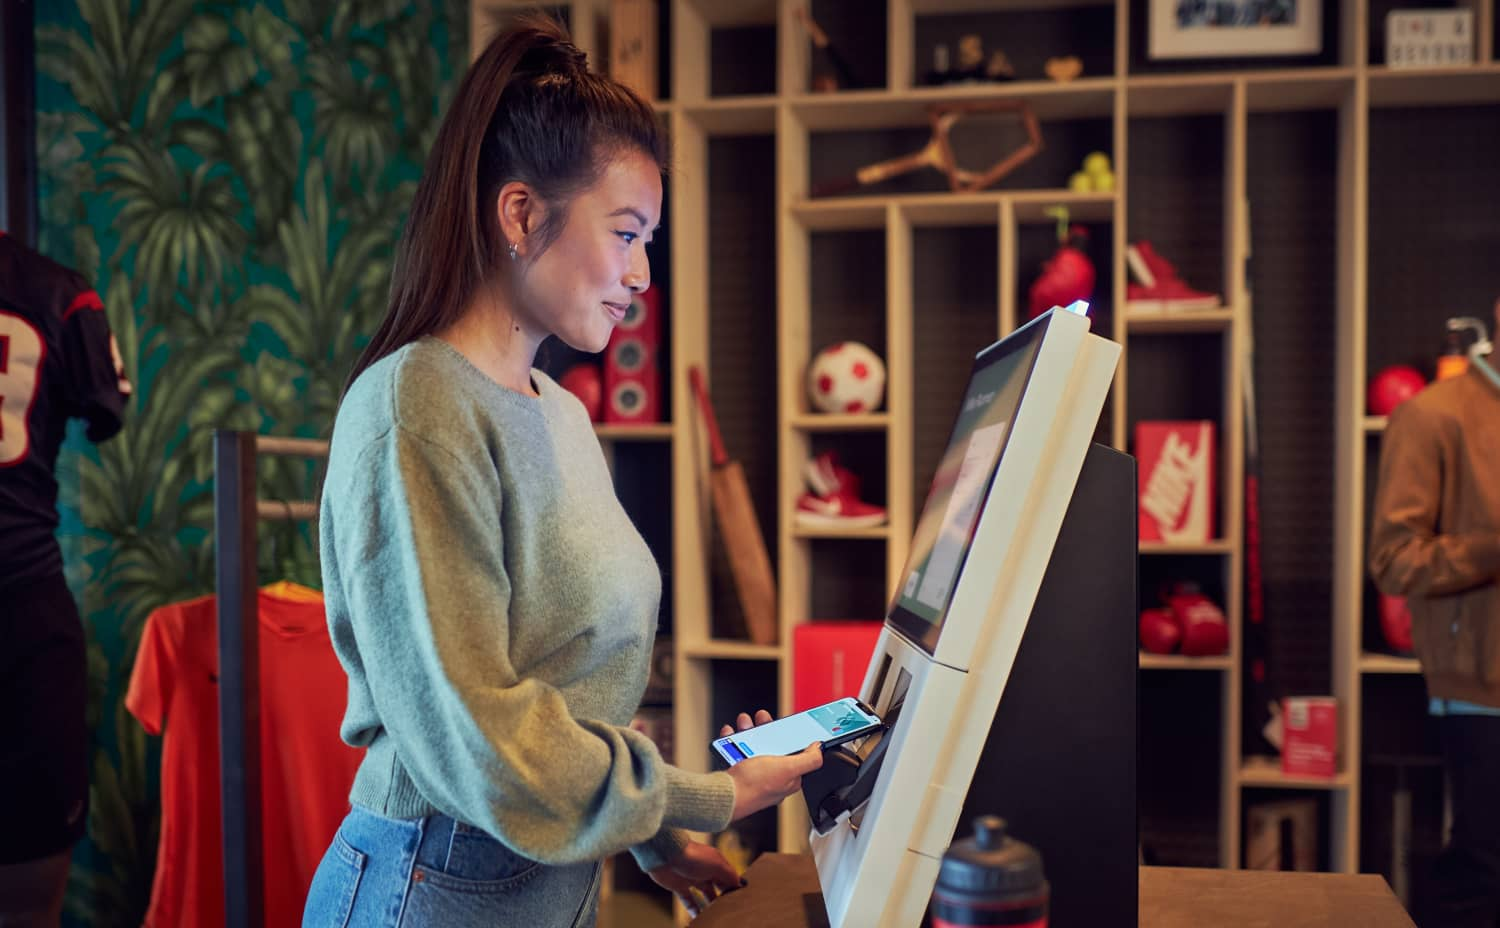 Foot Locker is expanding its partnership with payments company Adyen throughout its 3,100 stores across 27 markets, while Columbia Sportswear Company (CSC) recently selected the solution as its primary payments provider.